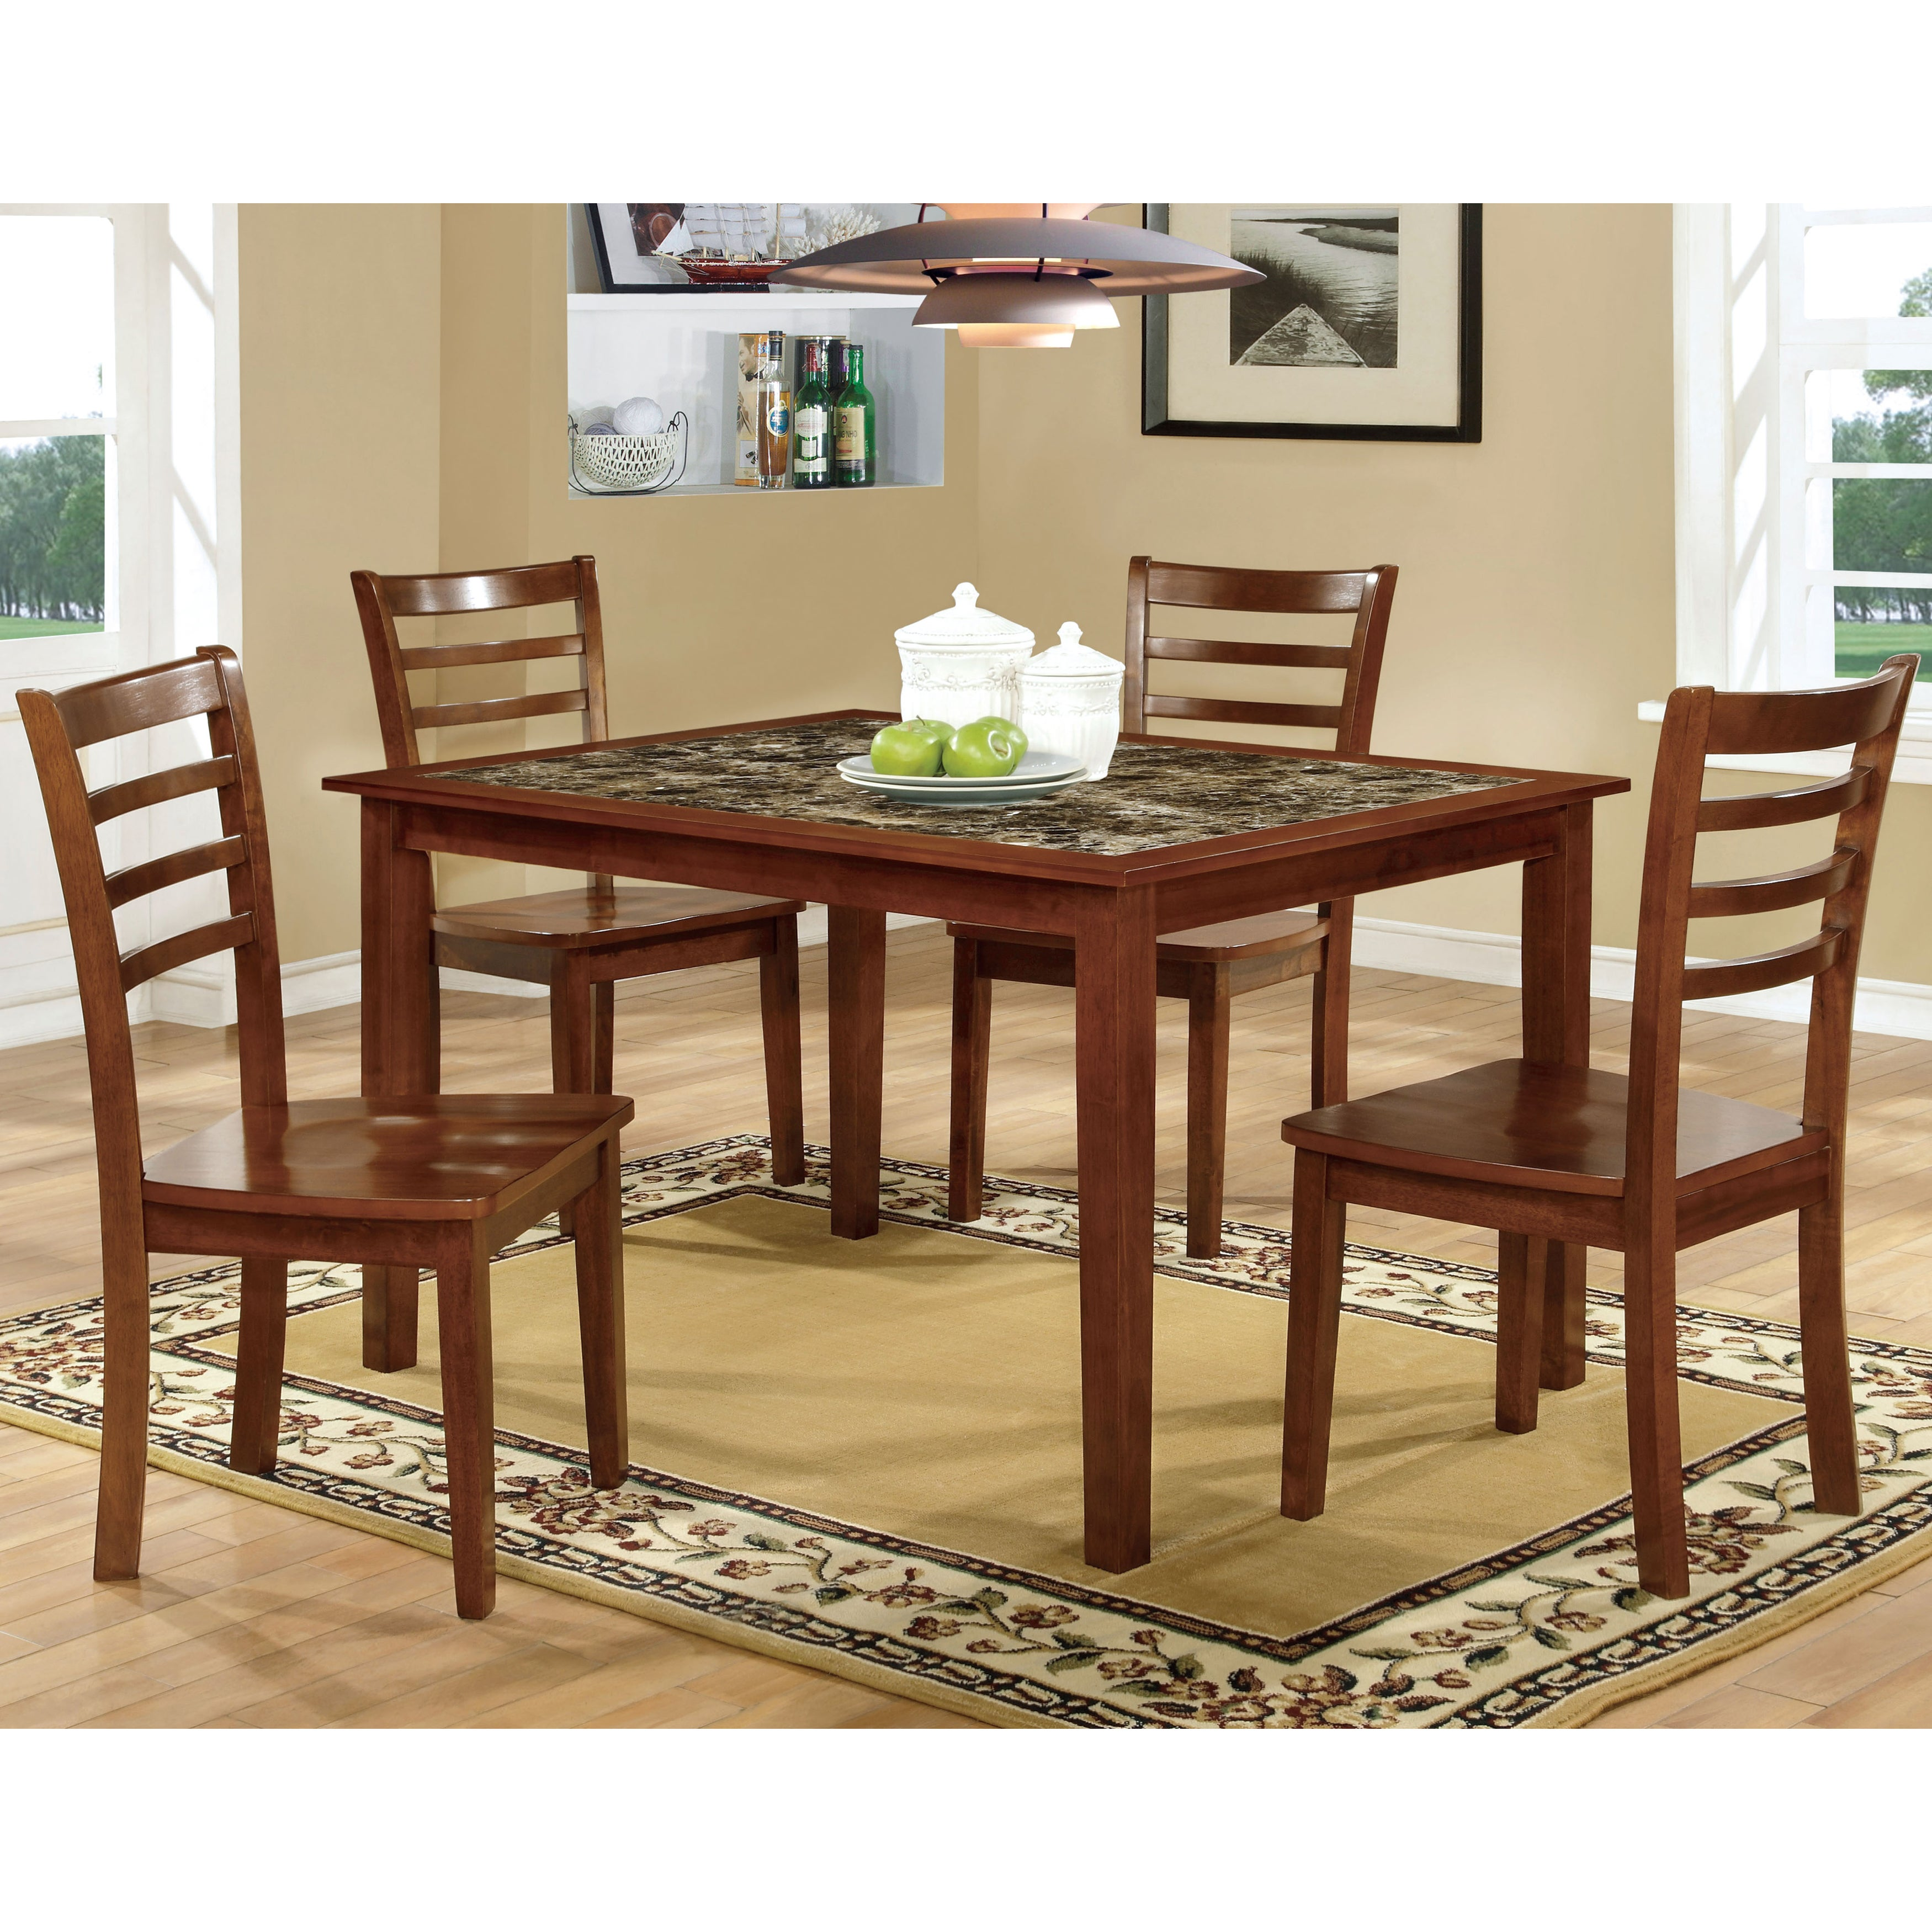 Furniture of America Brixen 5-Piece Faux Marble Dining Se...